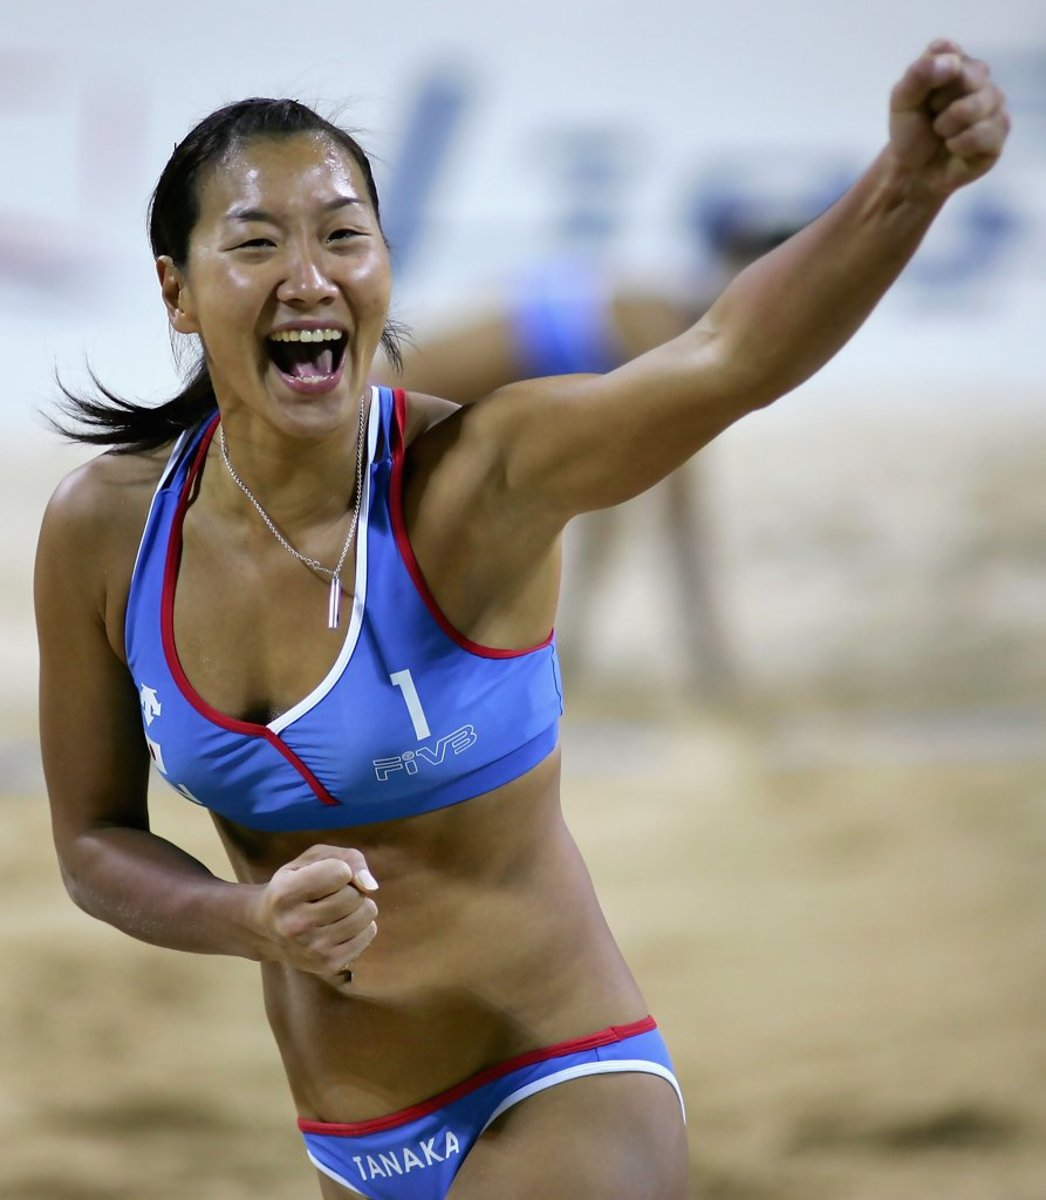 Shinako Tanaka of Japan celebrates winning a point against China in the final match.